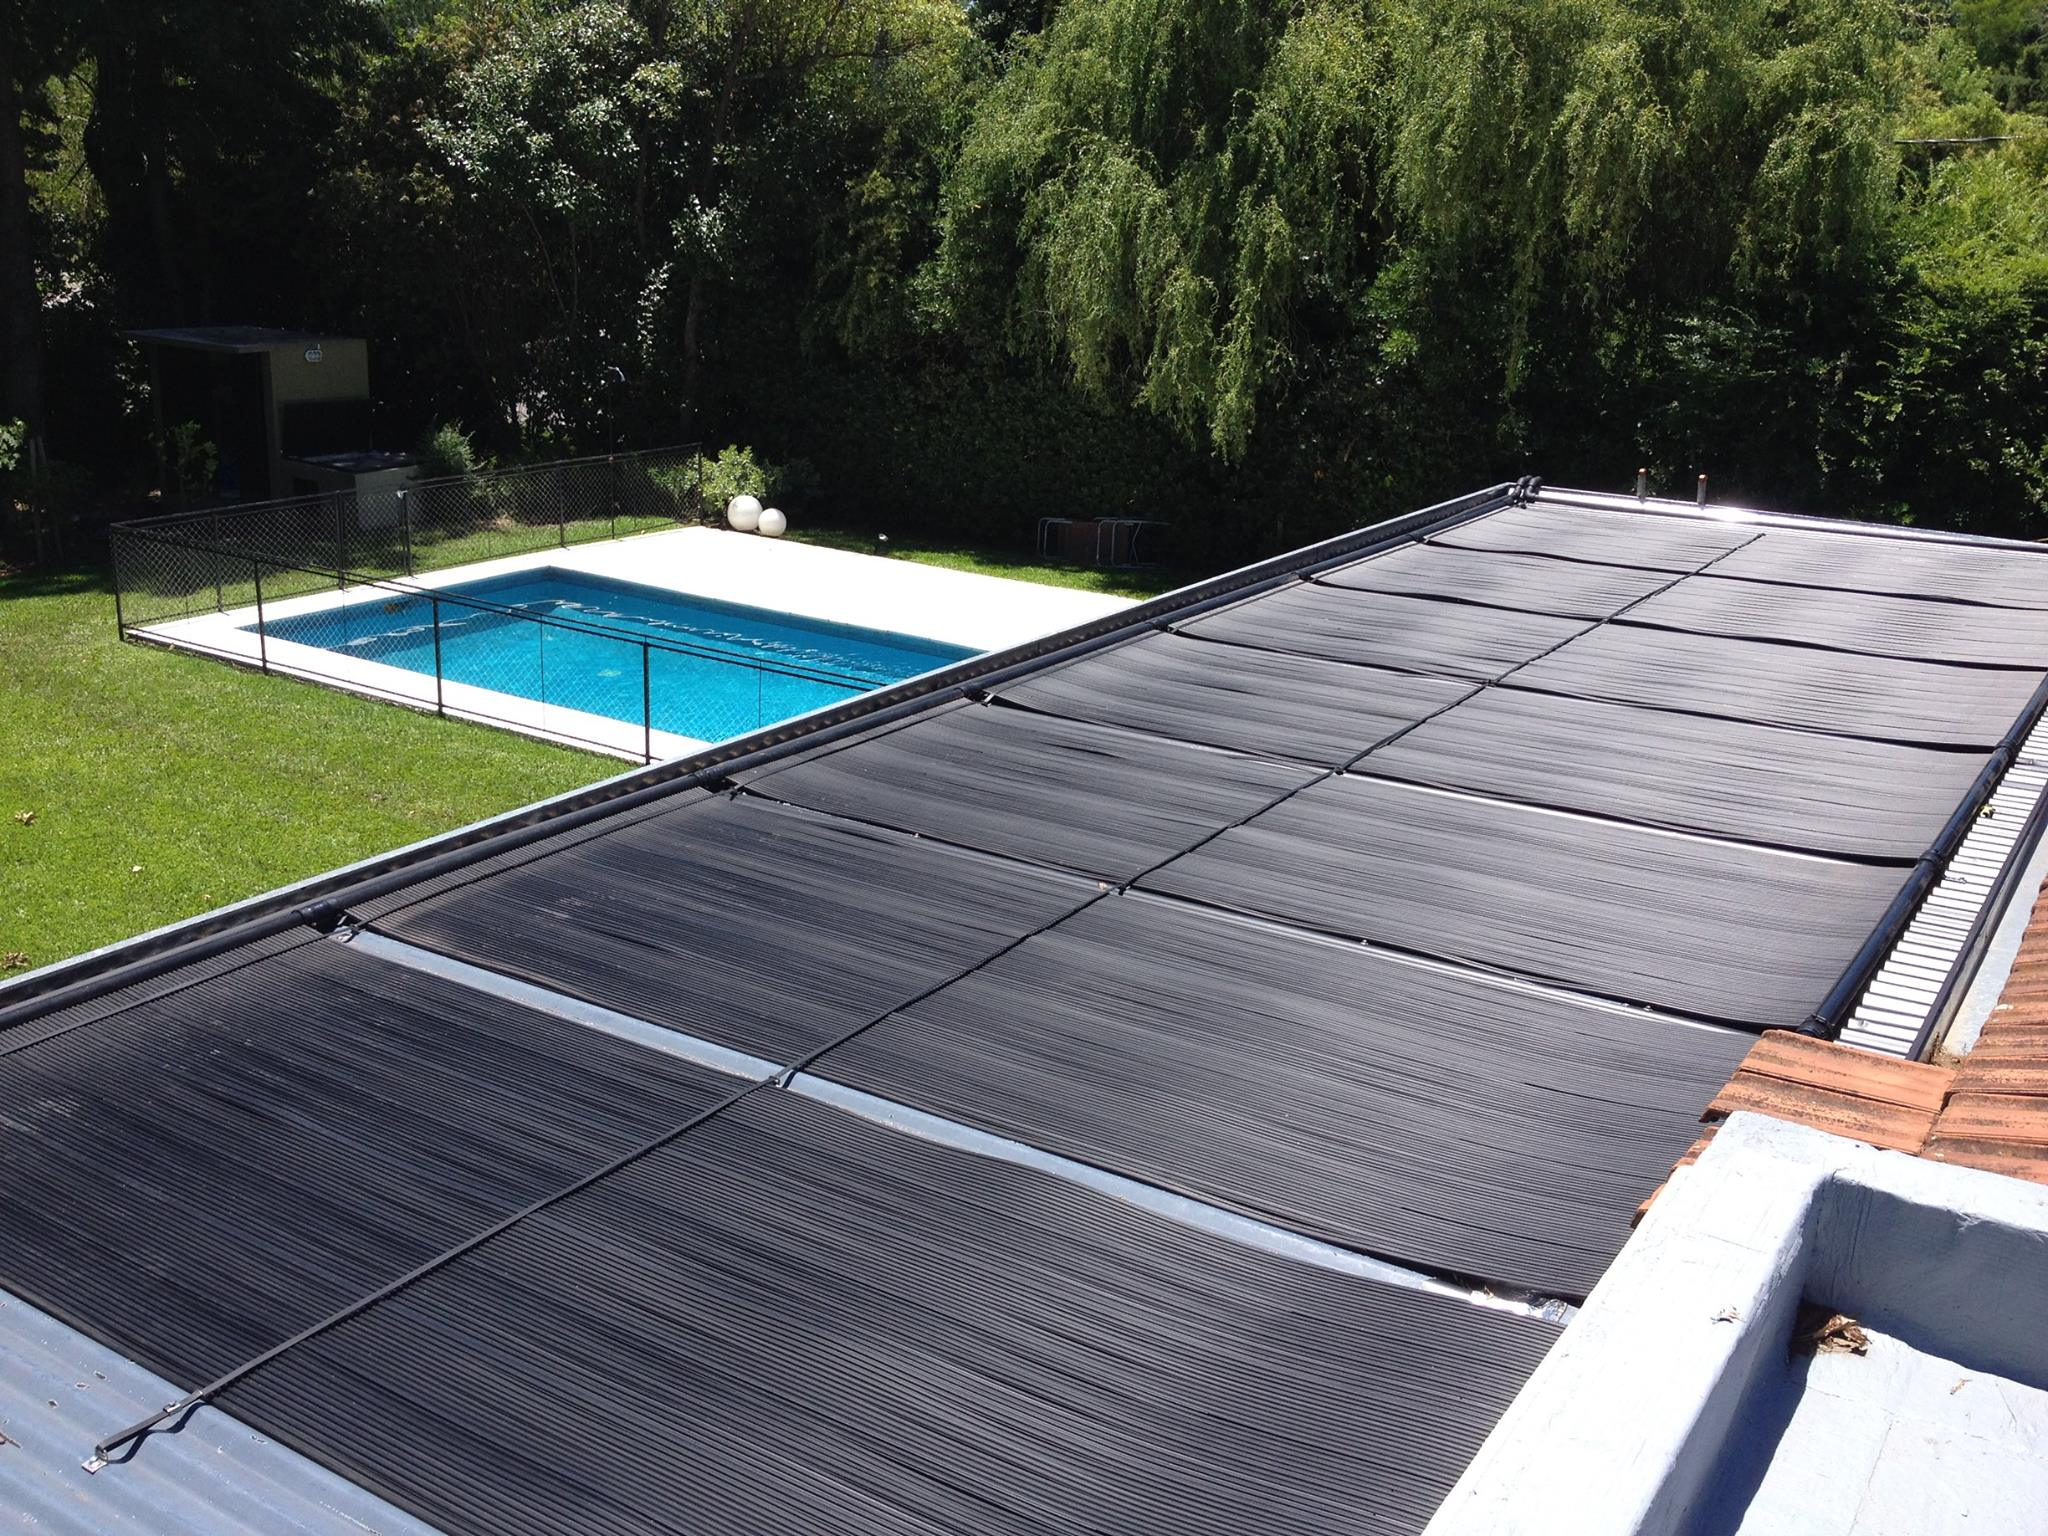 Ecosun pool solar on a residential roof in Buenos Aires Argentina